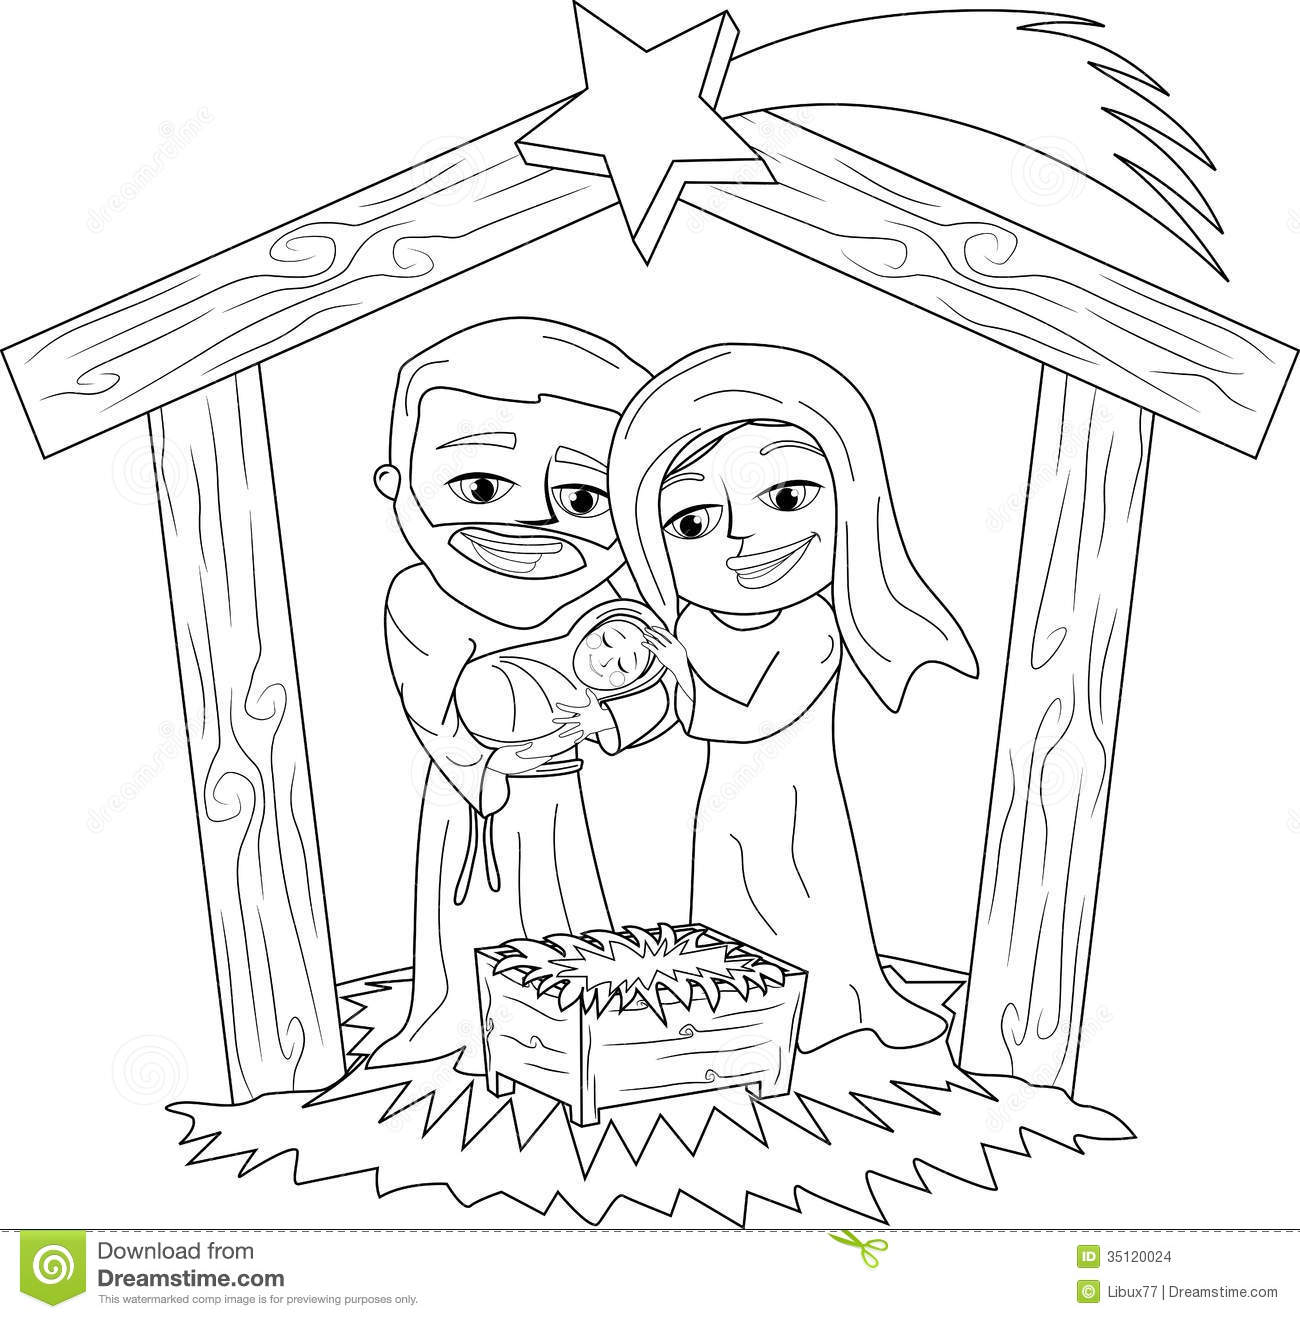 Children's coloring pages of nativity